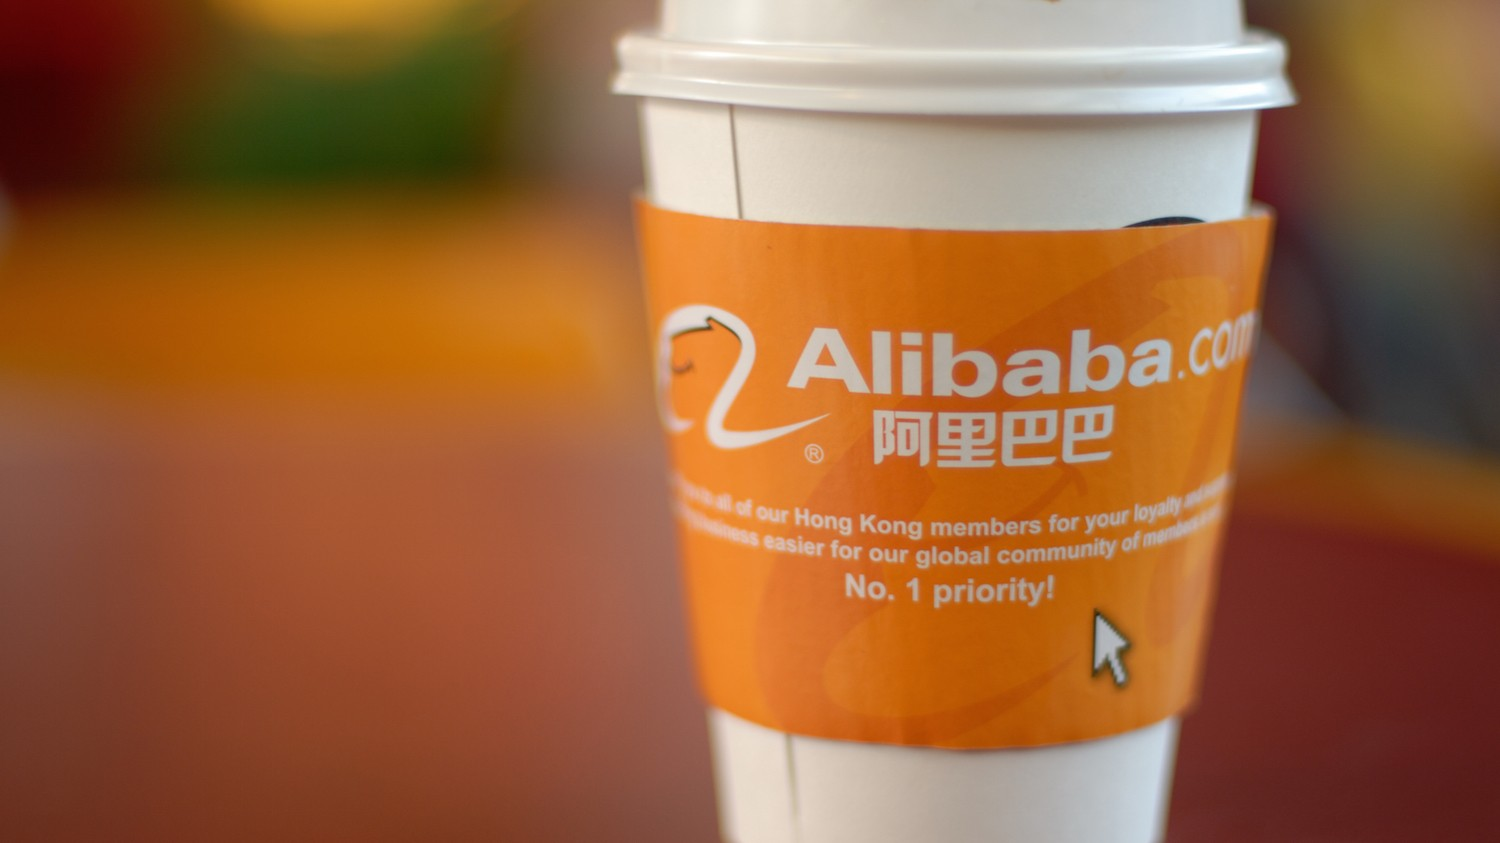 Alibaba Has a New Plan to Familiarize Itself to Westerners